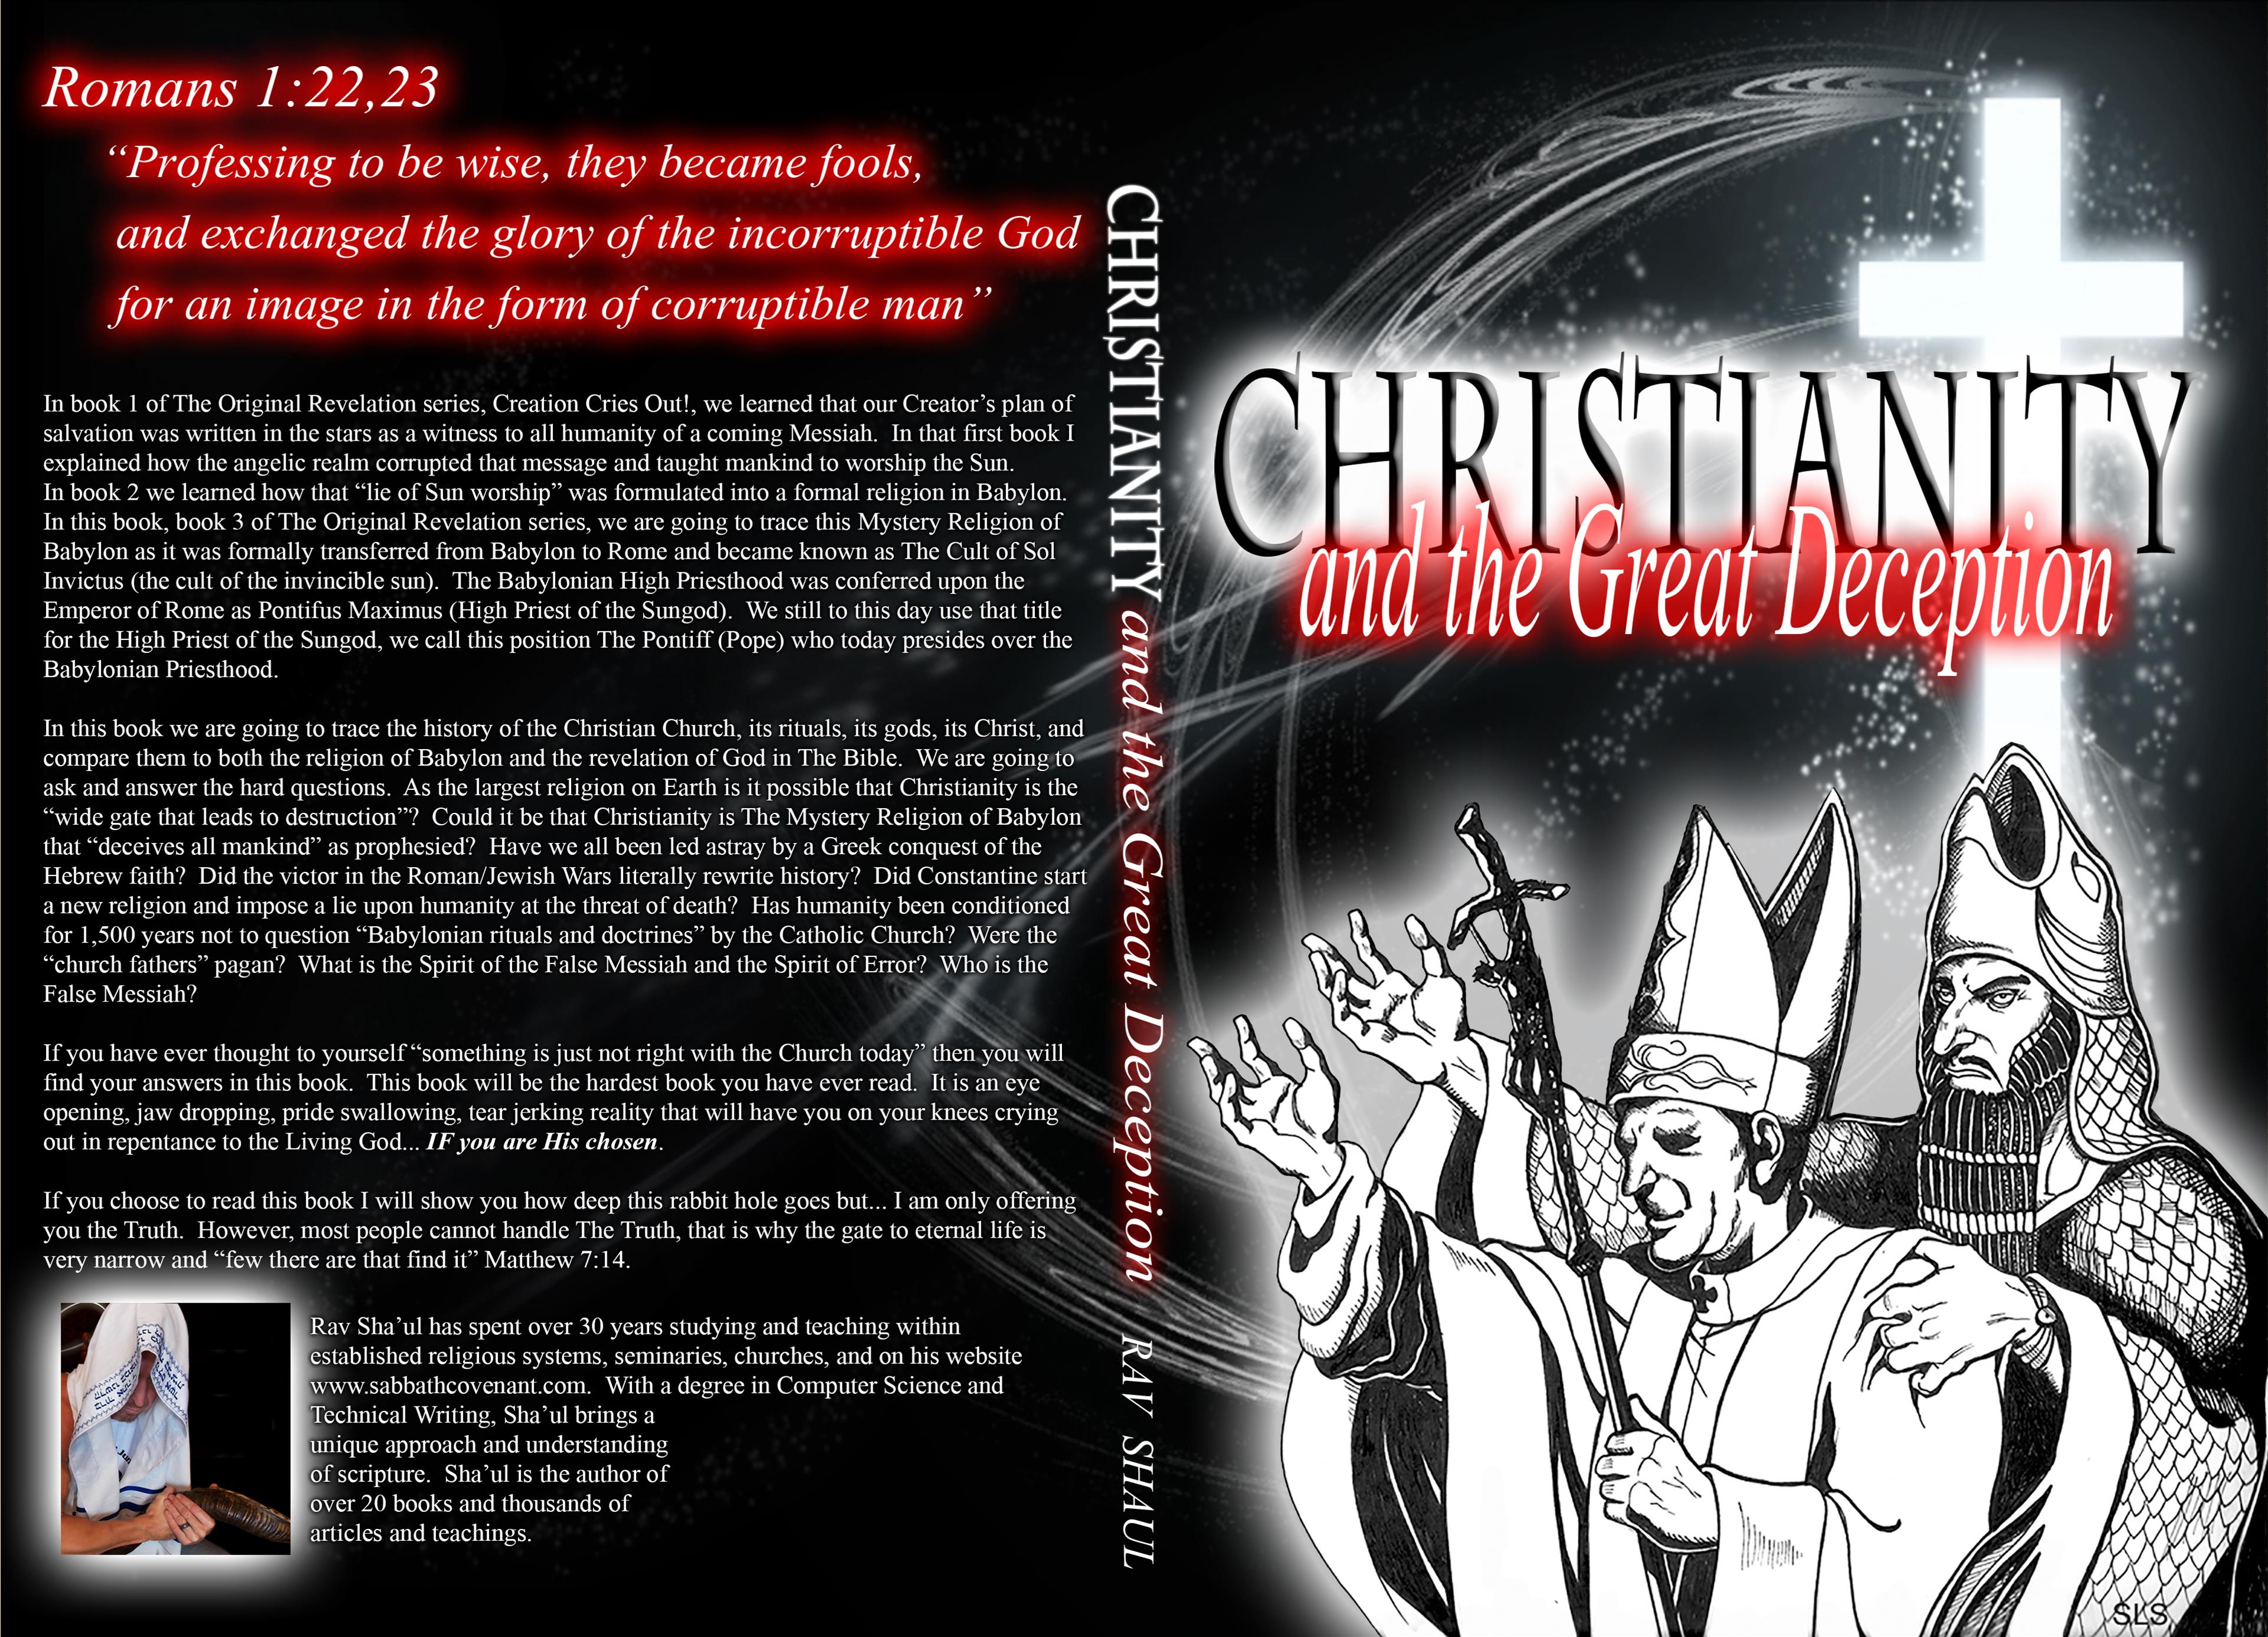 Christianity and the Great Deception cover image